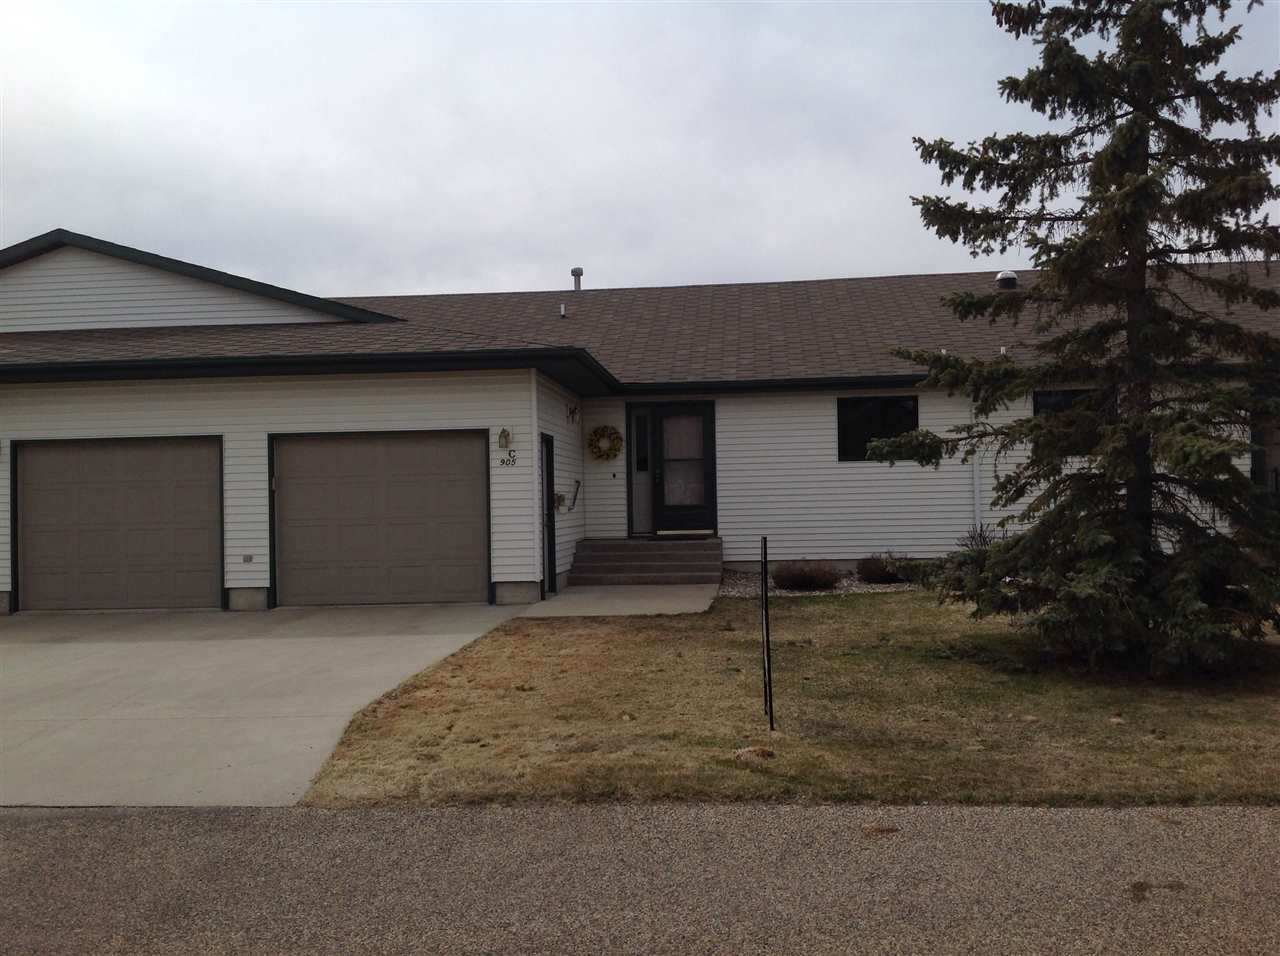 905 33RD AVE - UNIT C SW, Minot, ND 58701